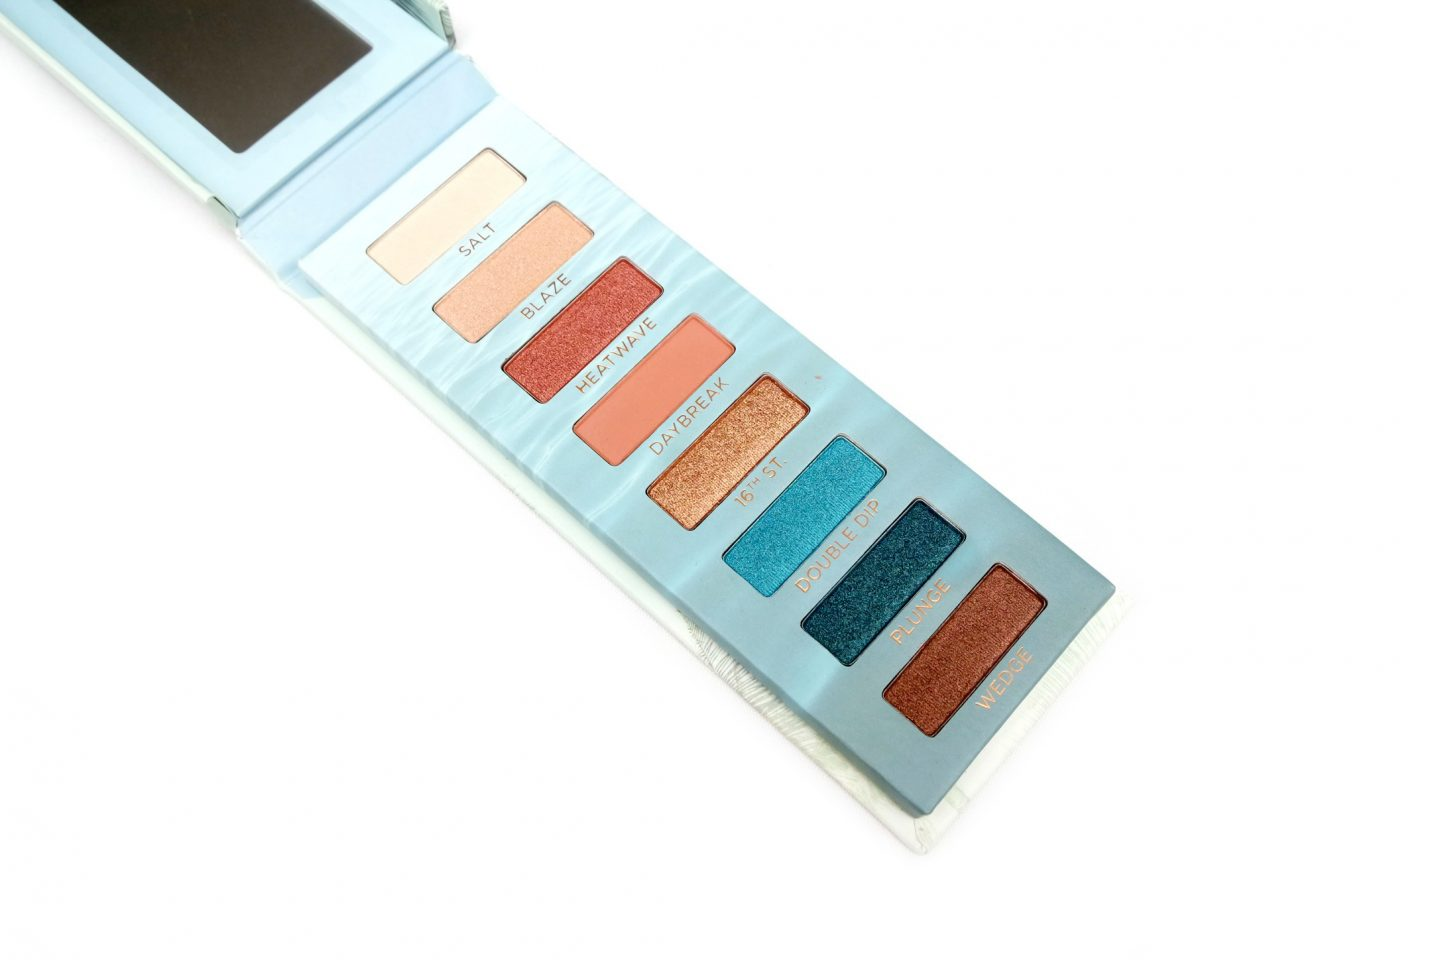 Beached Eyeshadow Palette by Urban Decay #22